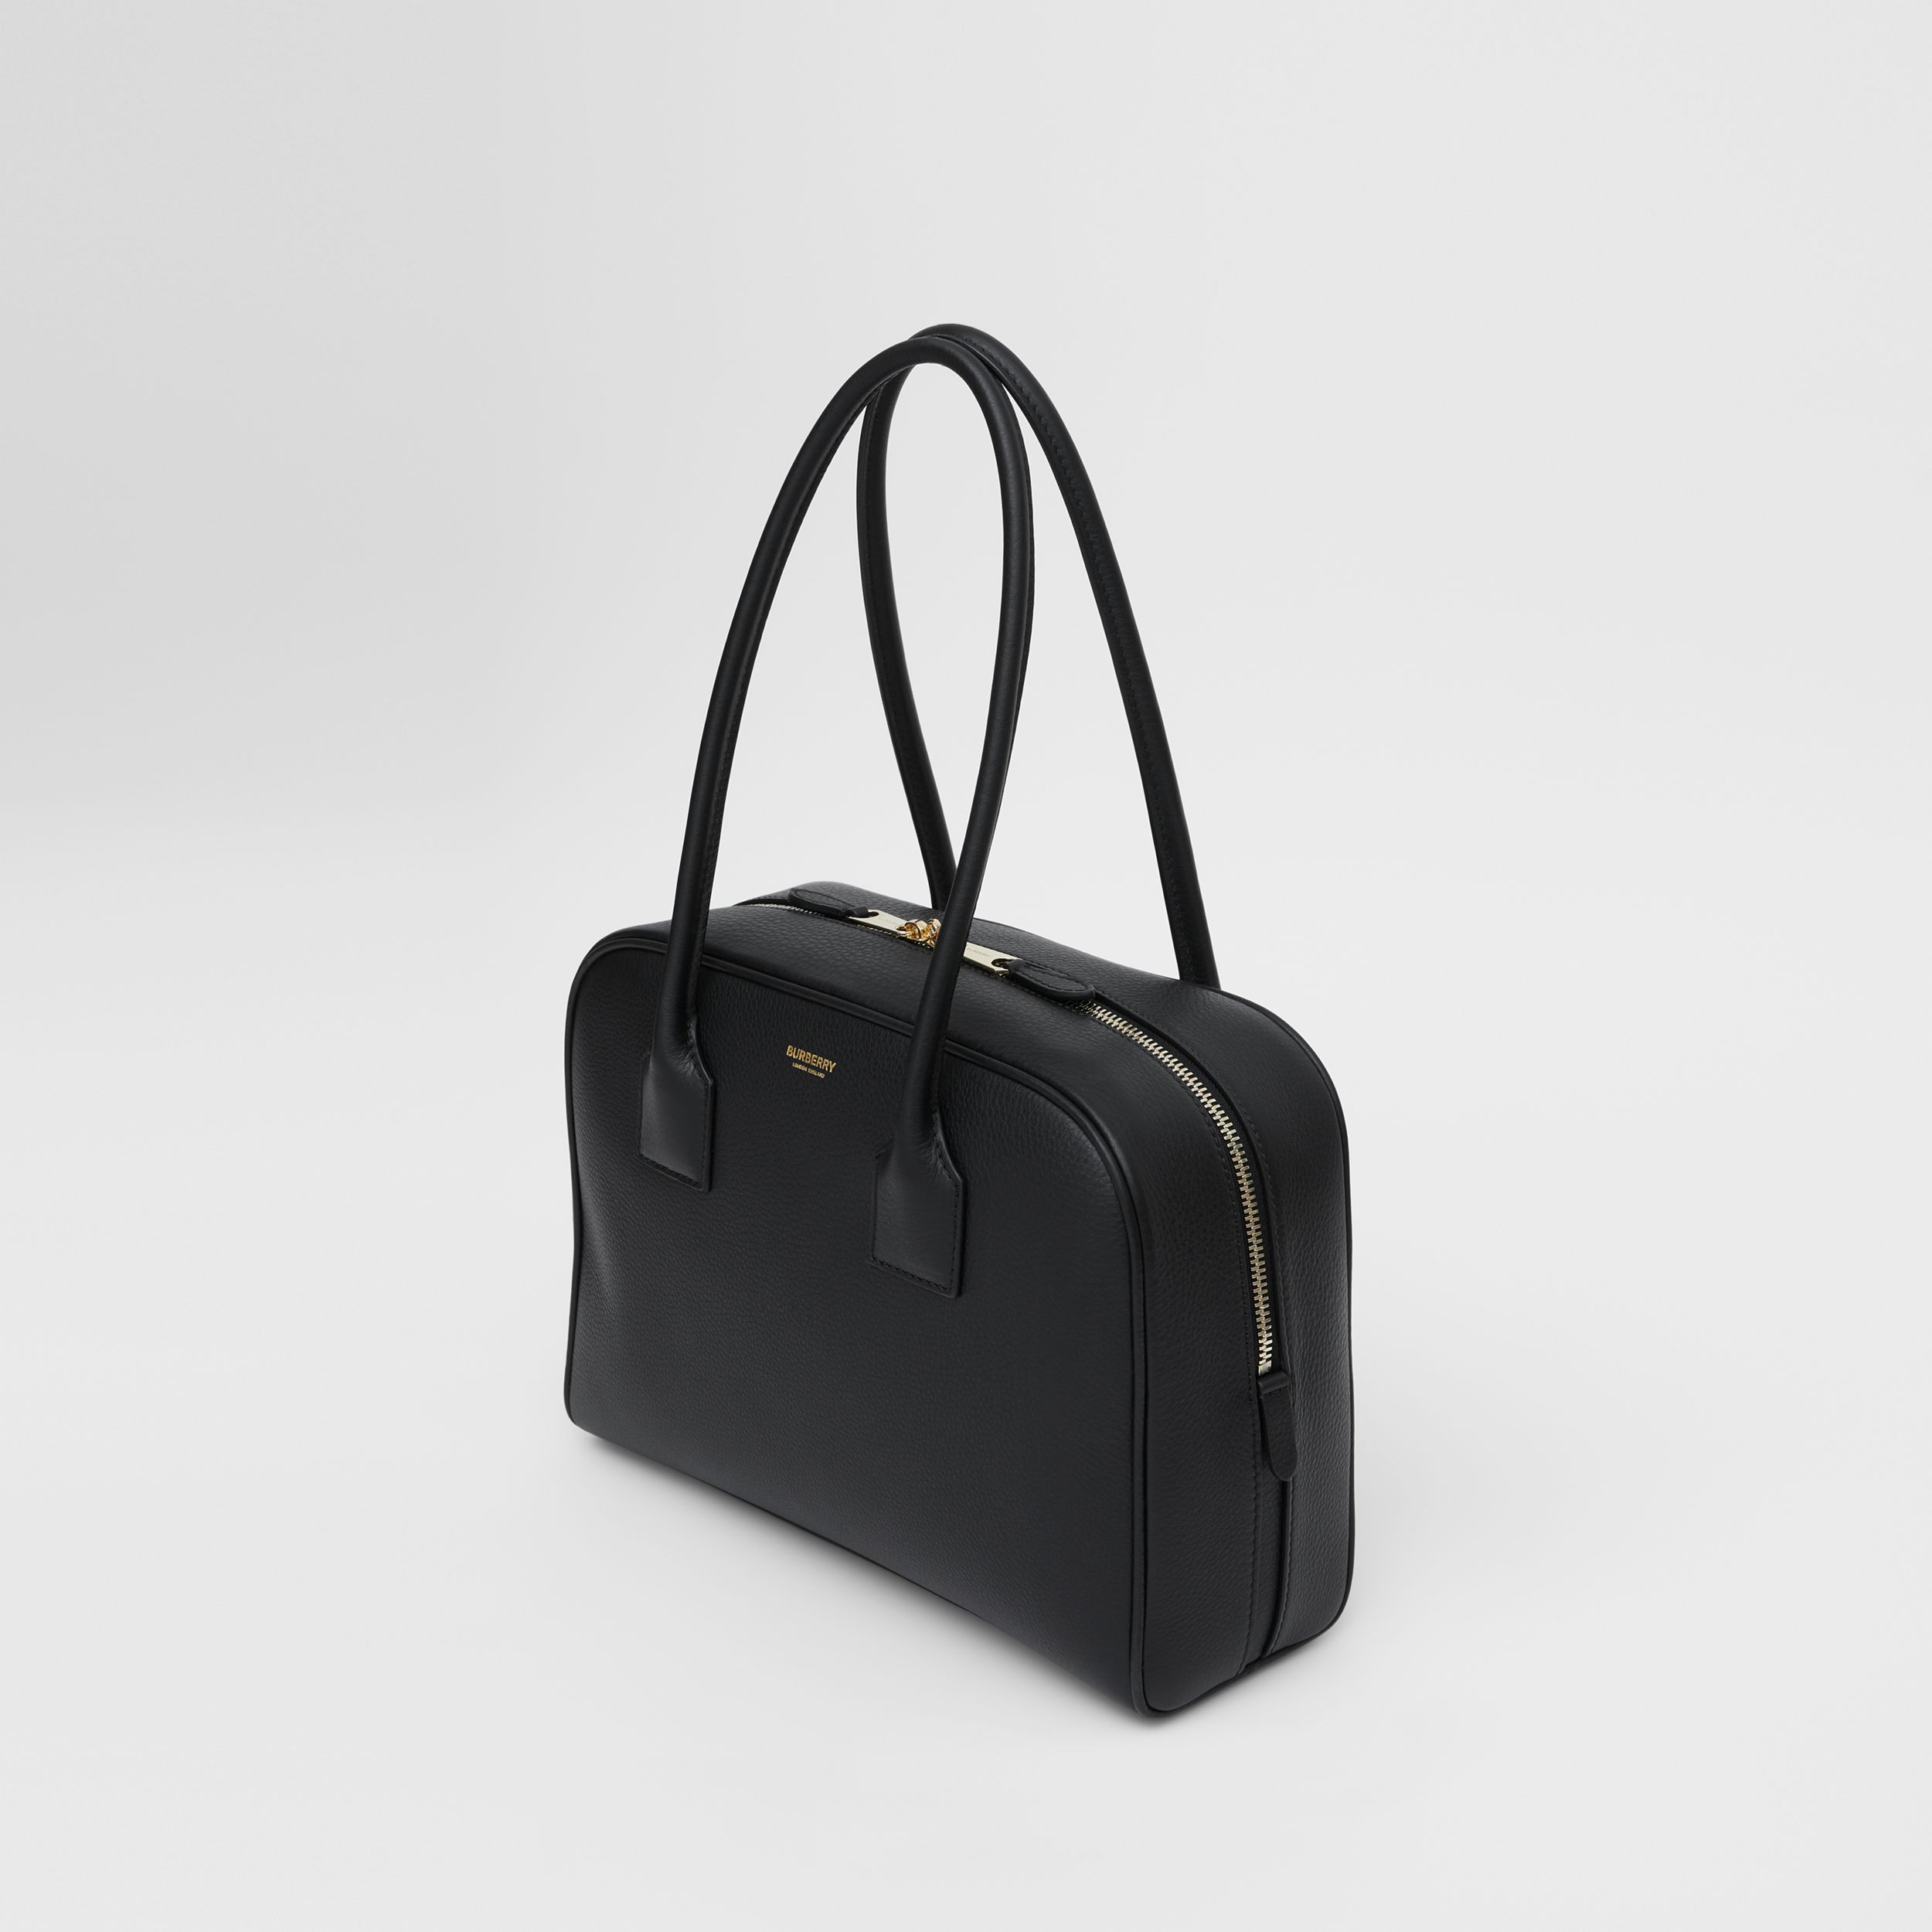 Medium Leather Half Cube Bag in Black - Women | Burberry Australia - 4